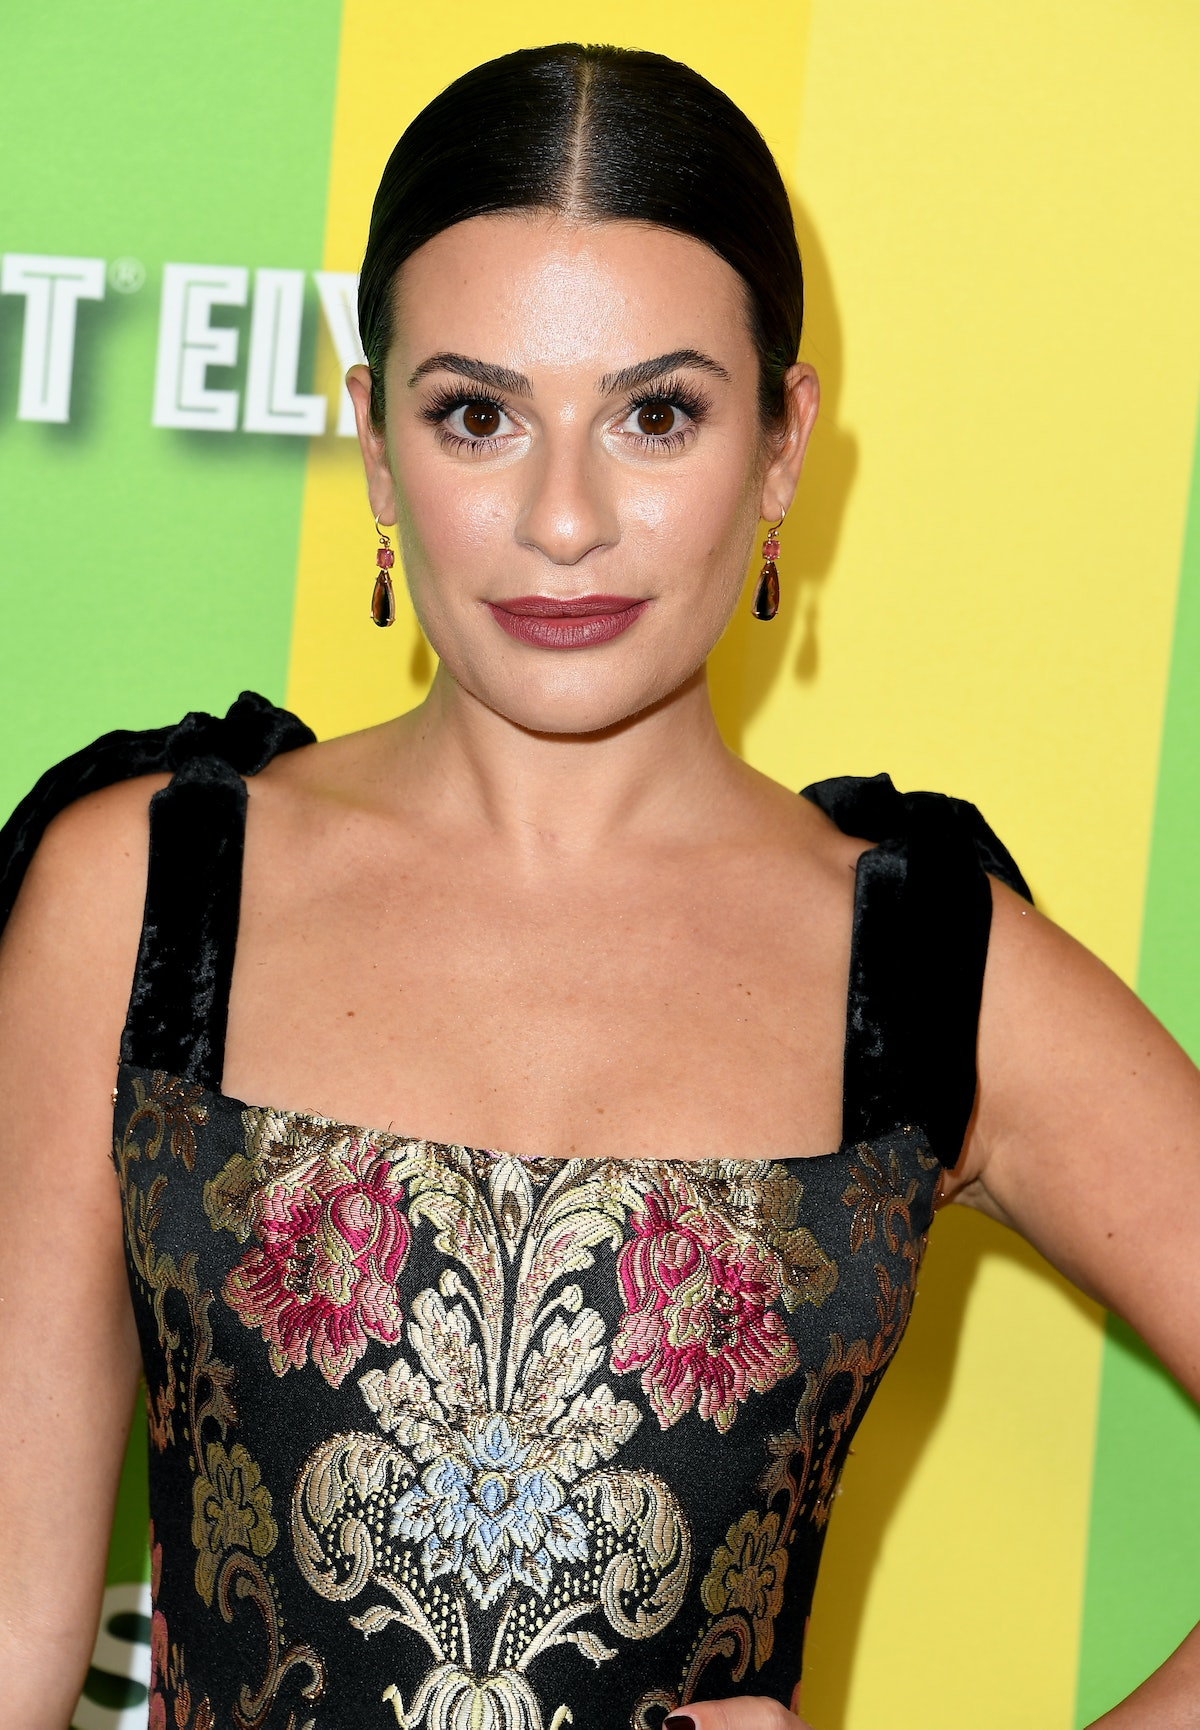 Lea Michele named one of the most ridiculous (bad) Virgo celebrities.